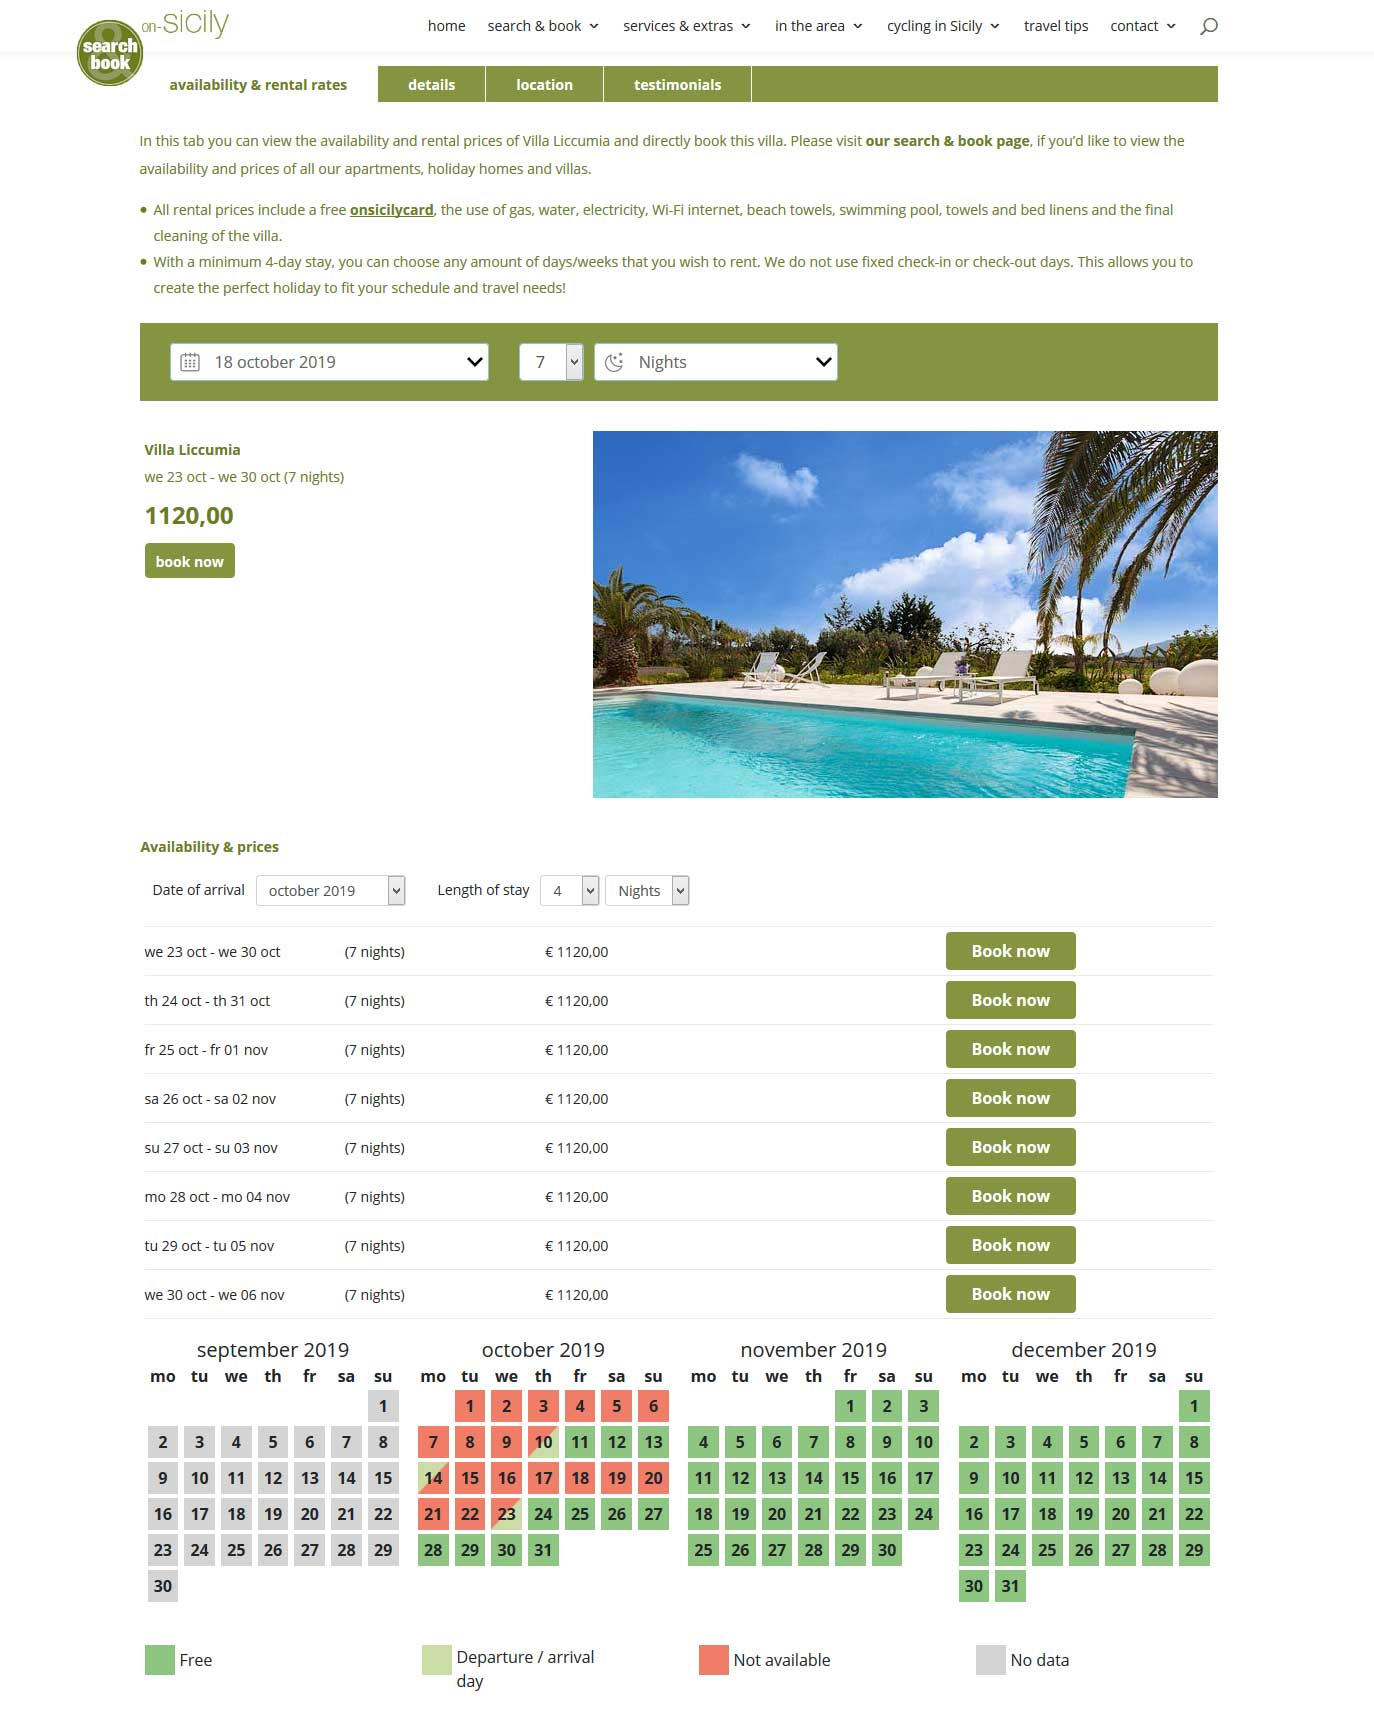 Book via the information page of the accommodation